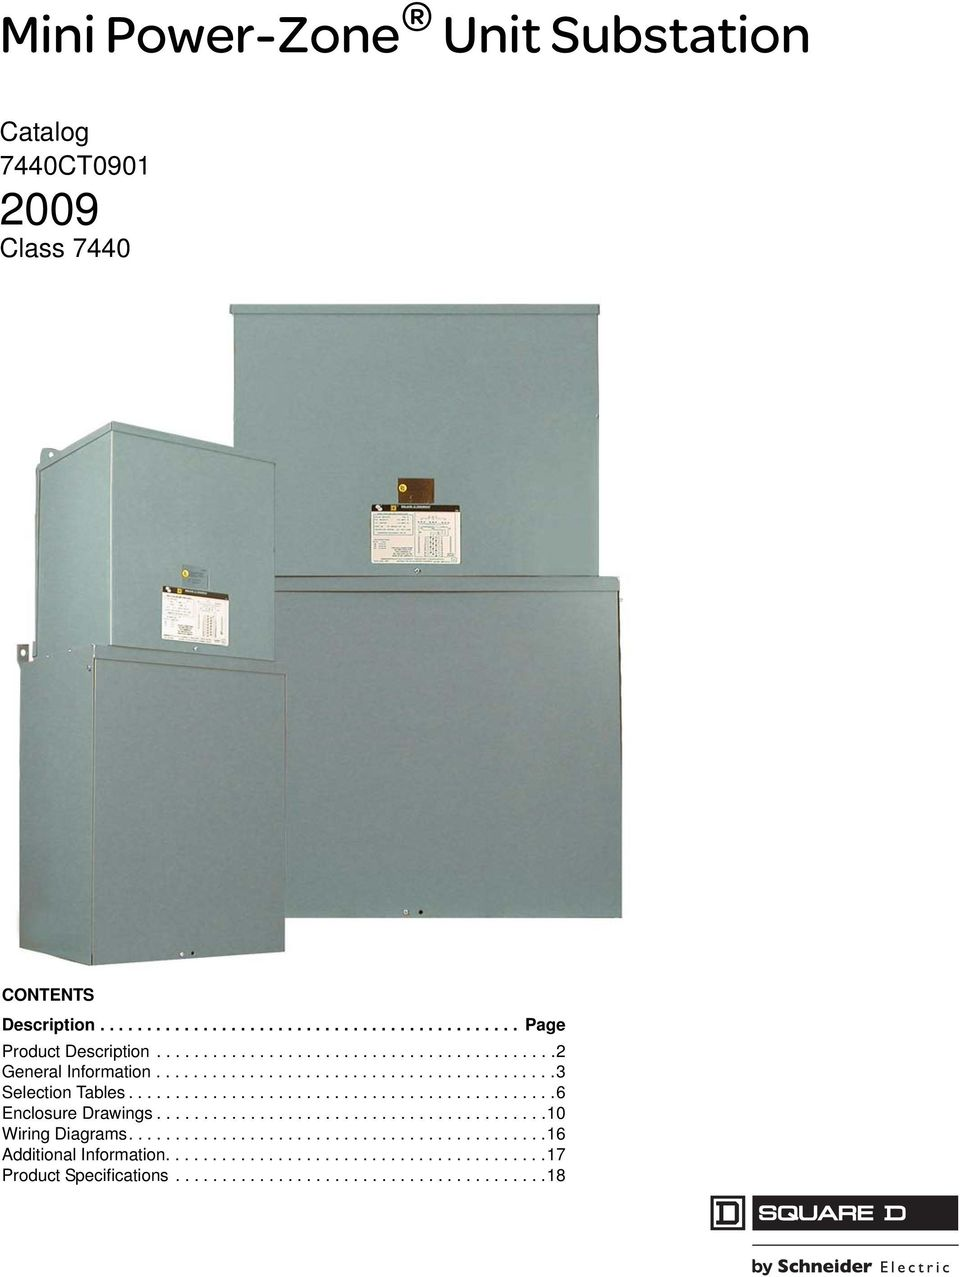 Square D 30 Kva Isolation Transformer Together With On Square D Wiring